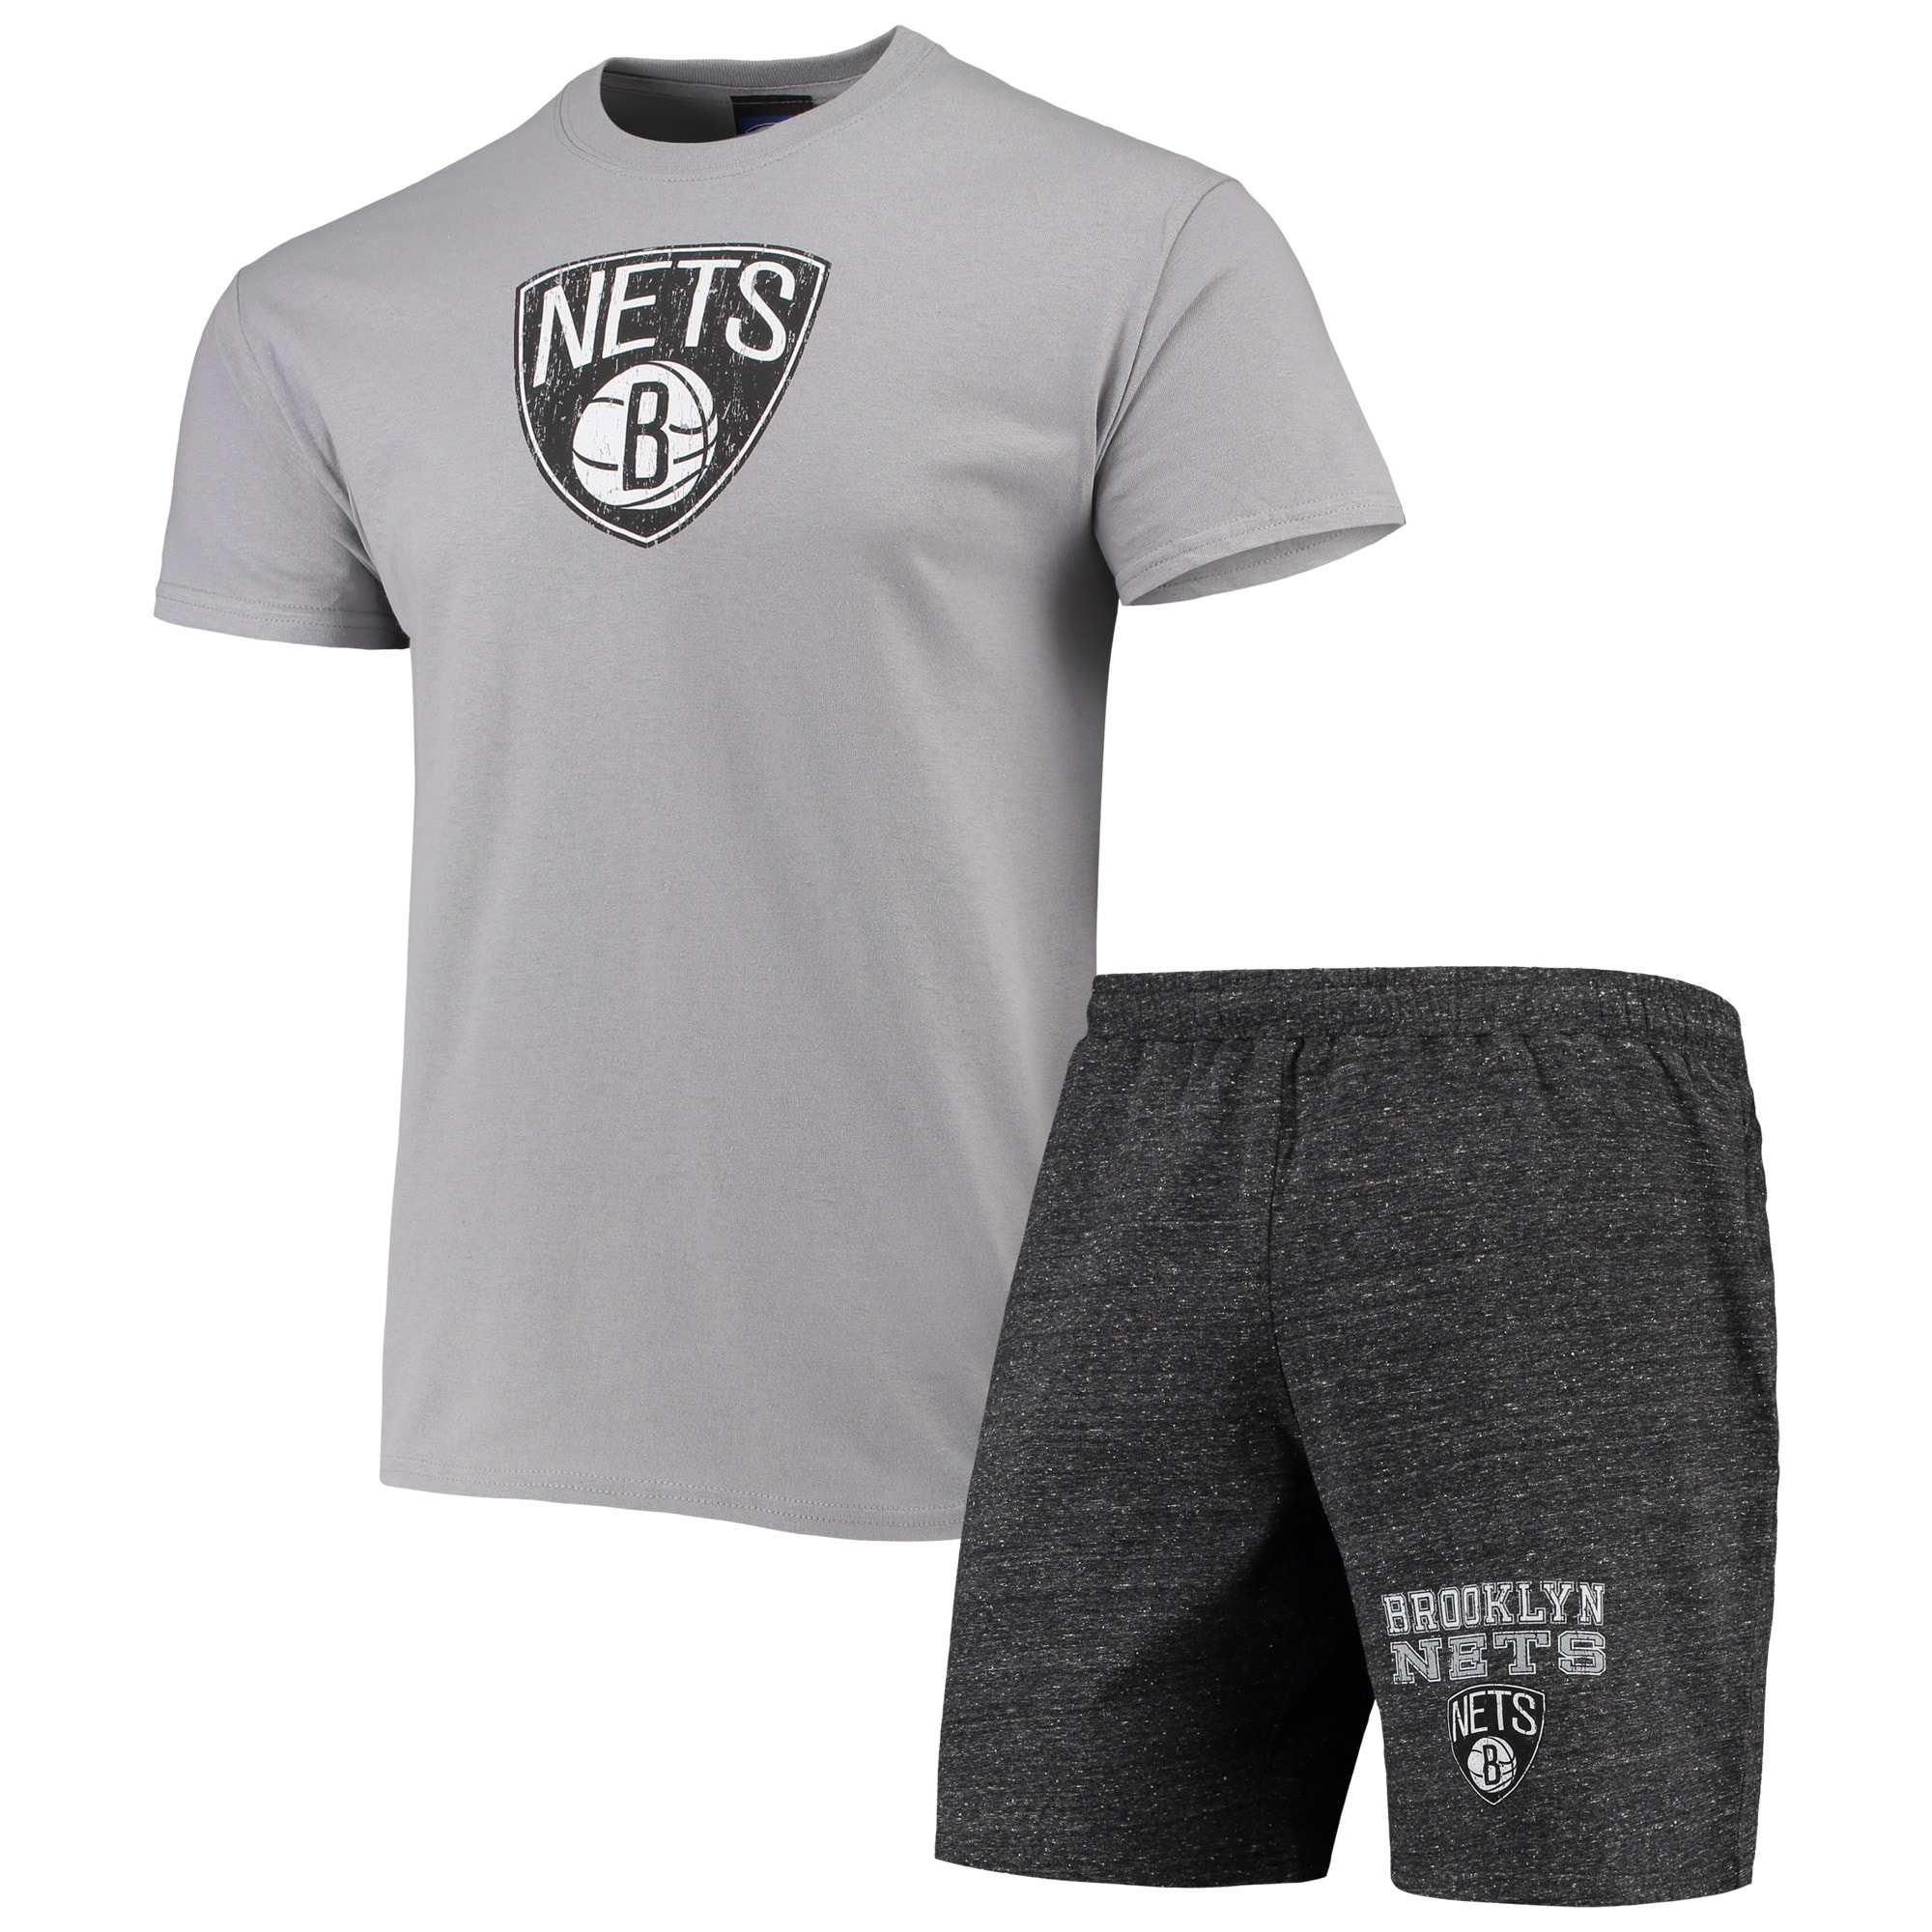 Brooklyn Nets Concepts Sport Pitch T-Shirt & Shorts Set - Gray/Charcoal